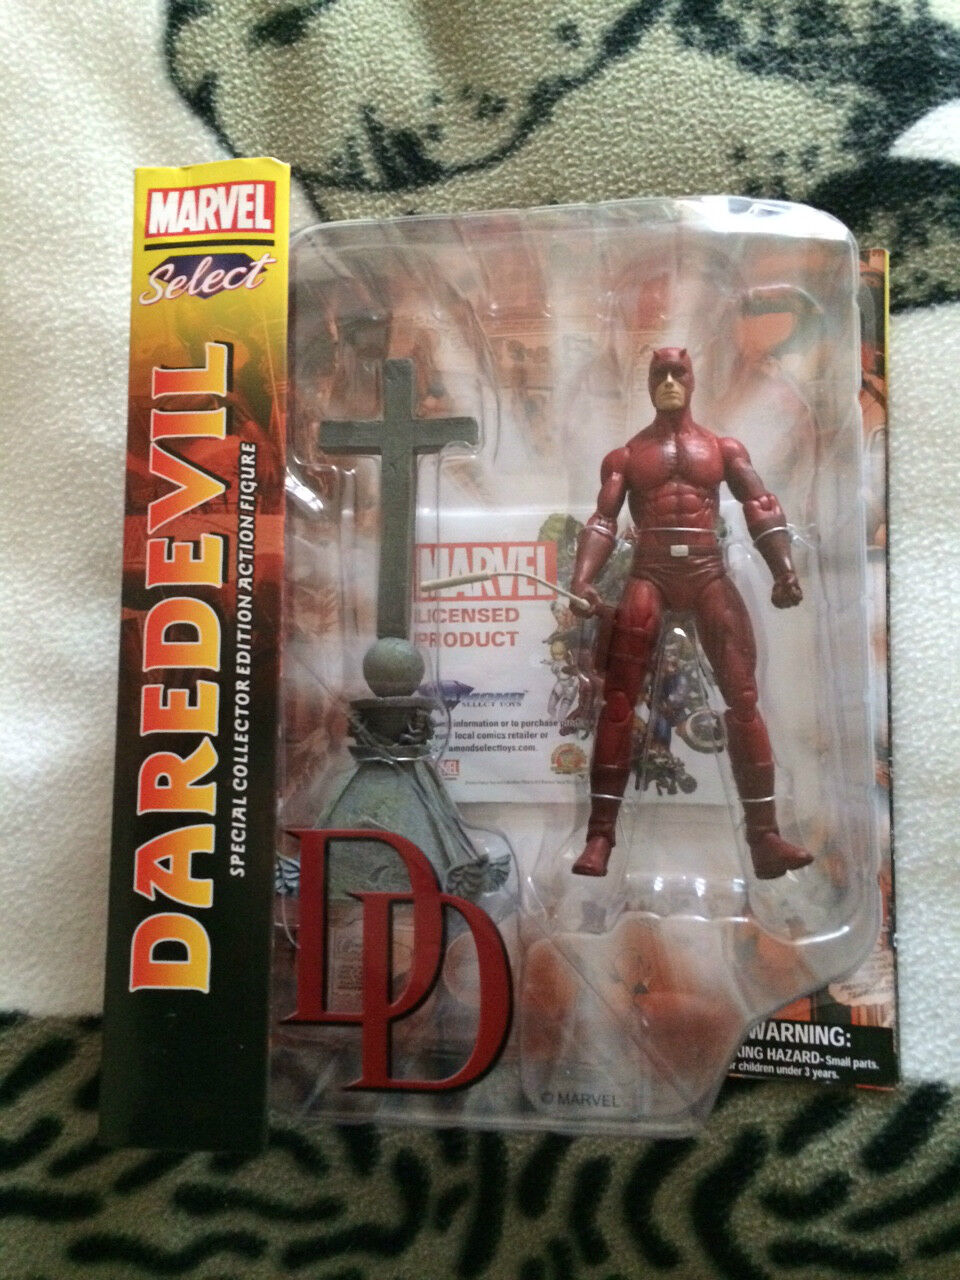 Marvel select  Daredevil  special collector collector collector edition   6 inch figure set fc7dea